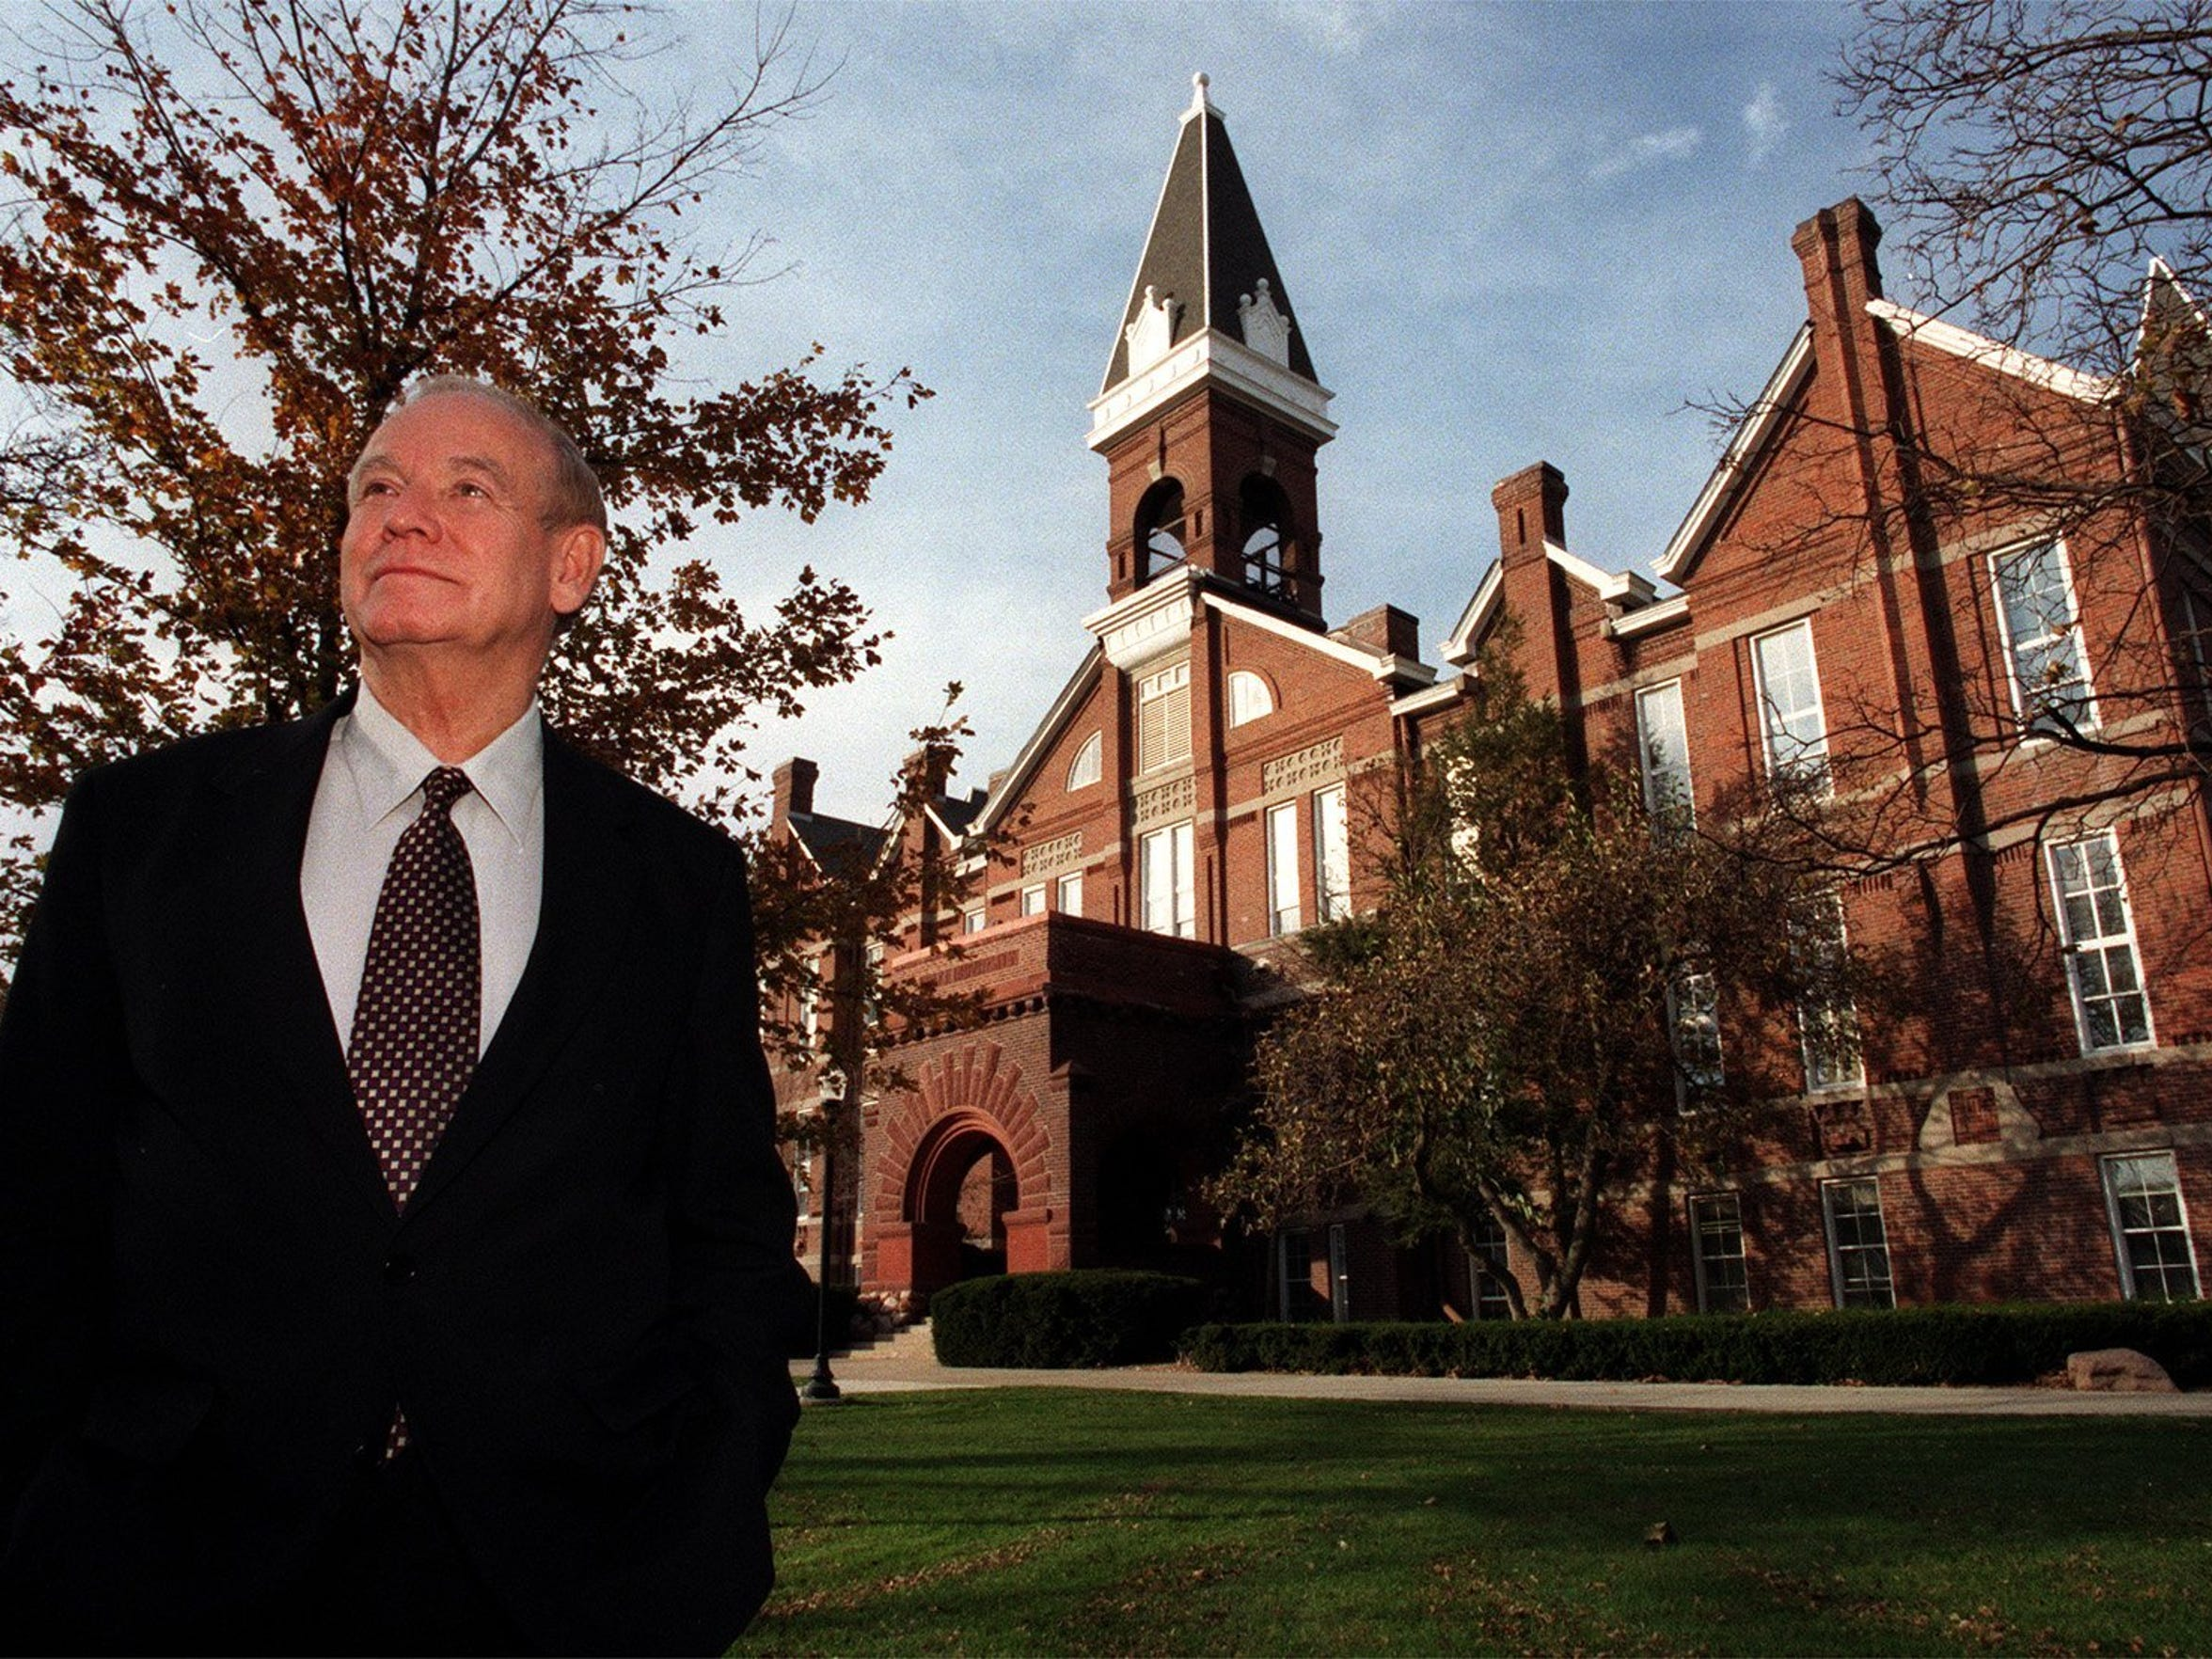 From 1998: Drake University President Robert Ray is